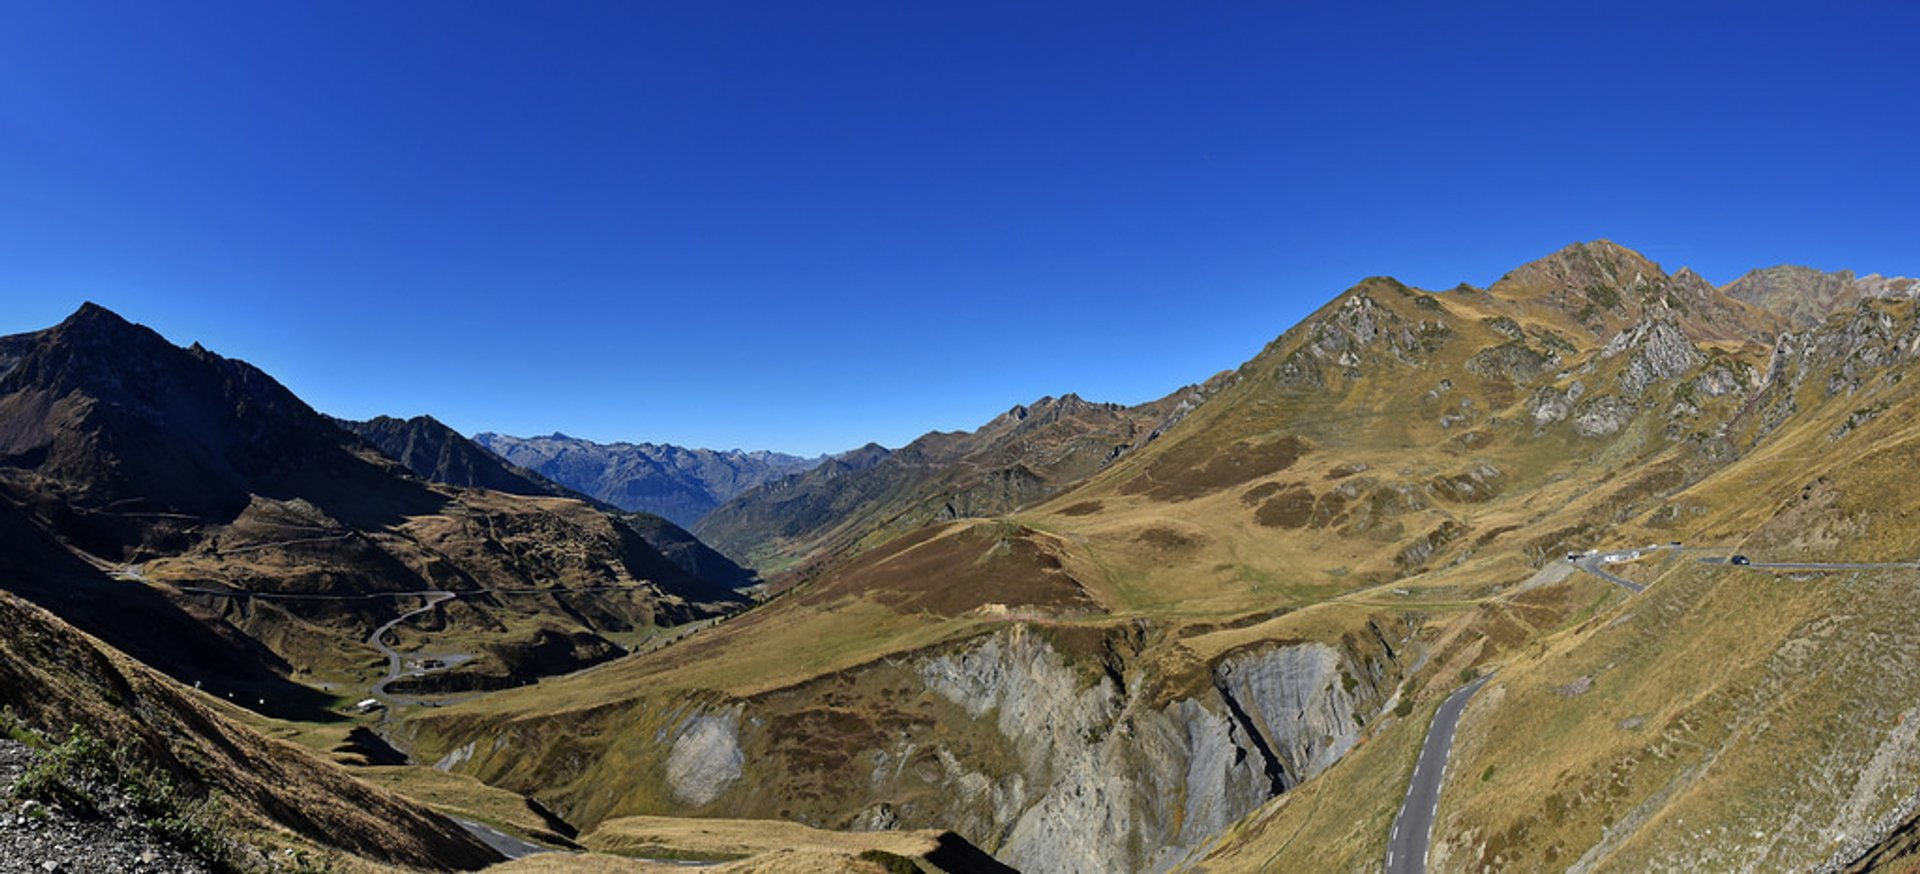 Best time to see Col du Tourmalet in France 2020